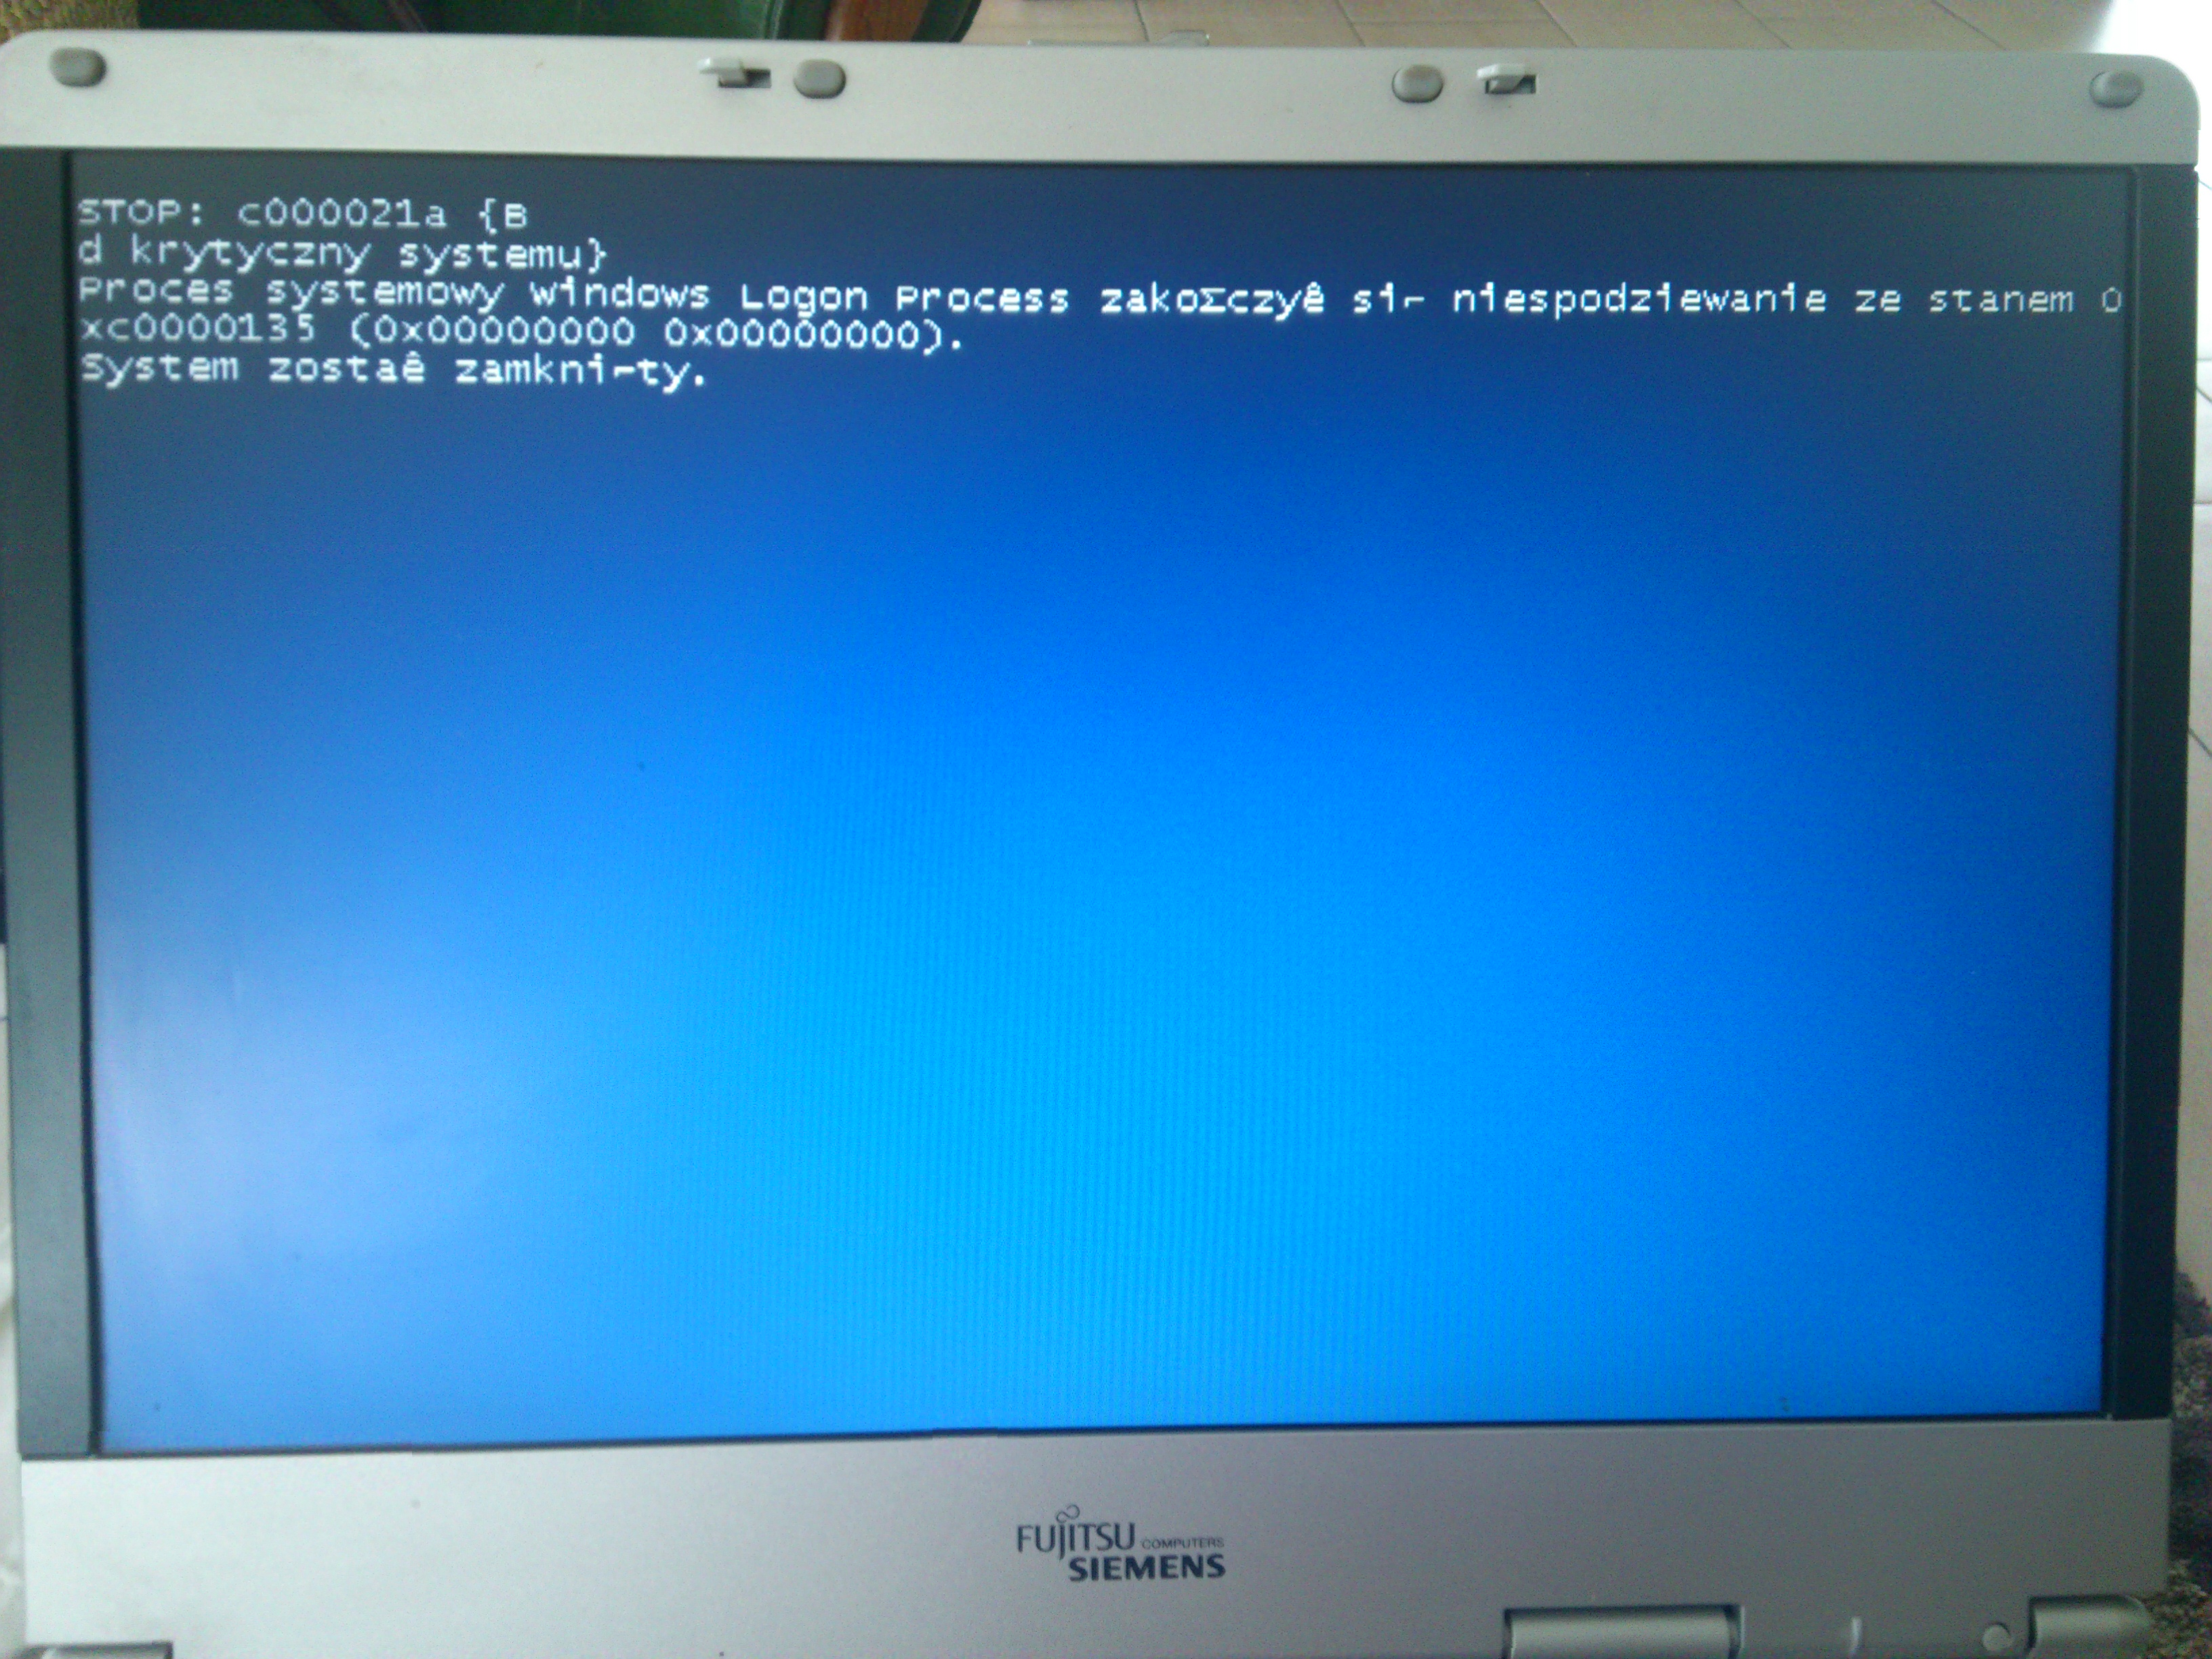 Fujitsu Siemens AmiloPro V3515 - Windows XP pr�buje start, a potem reset laptopa